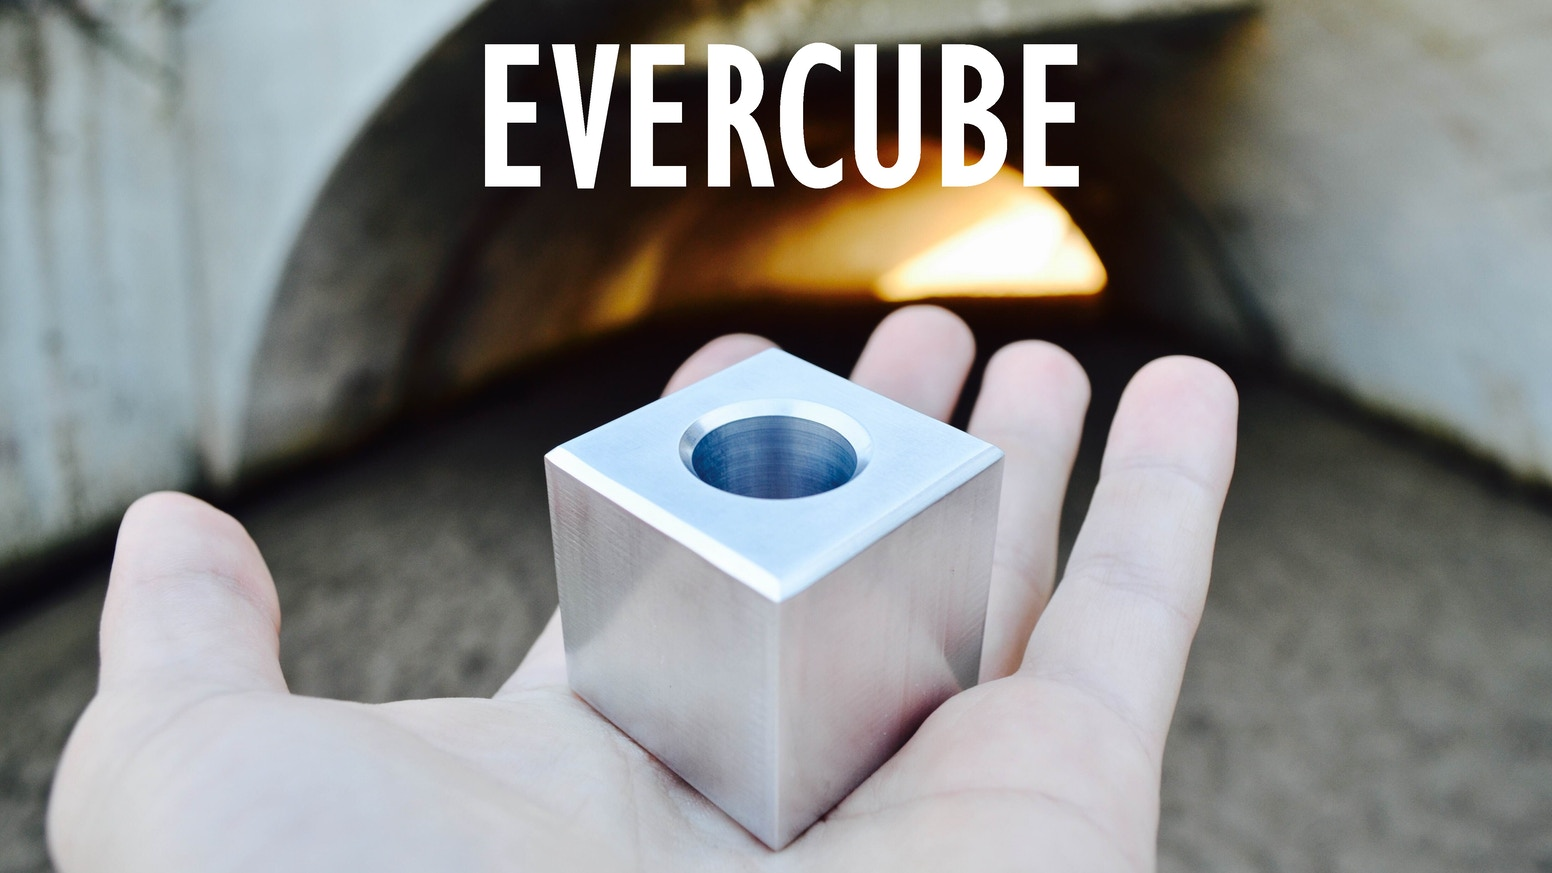 This eco-friendly cube is a practical solution to hold your toothbrush and simplify your daily routine.